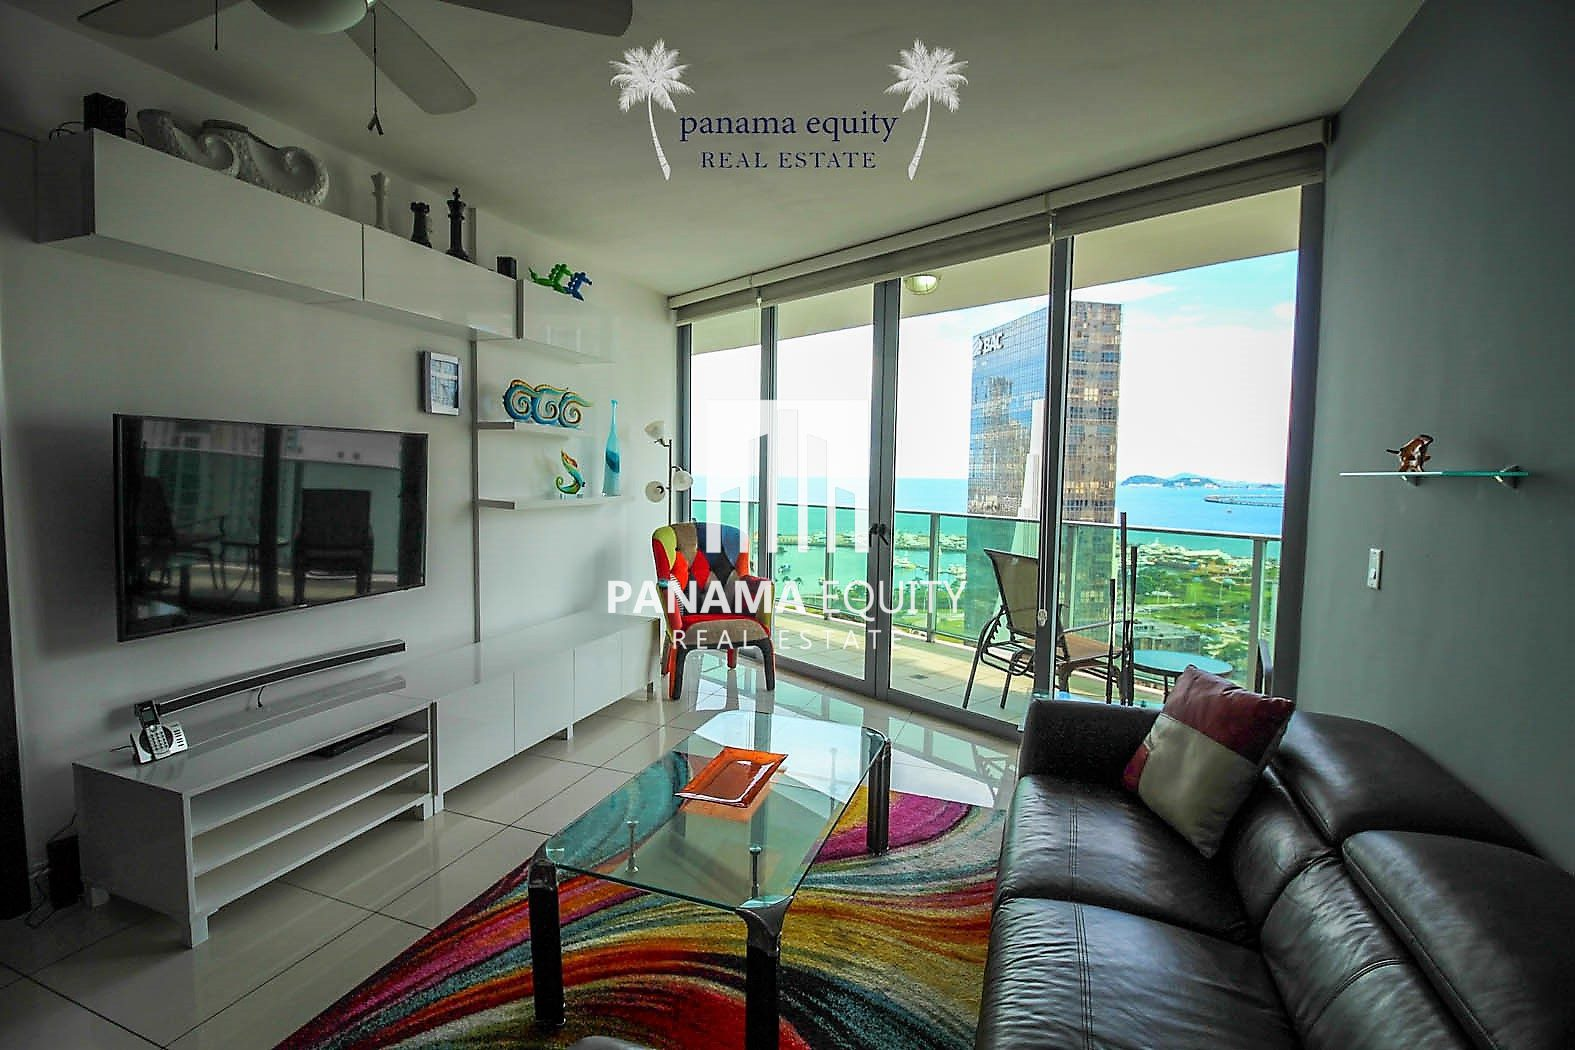 TWO-BEDROOM CONDO FOR SALE IN ALLURE AT THE PARK